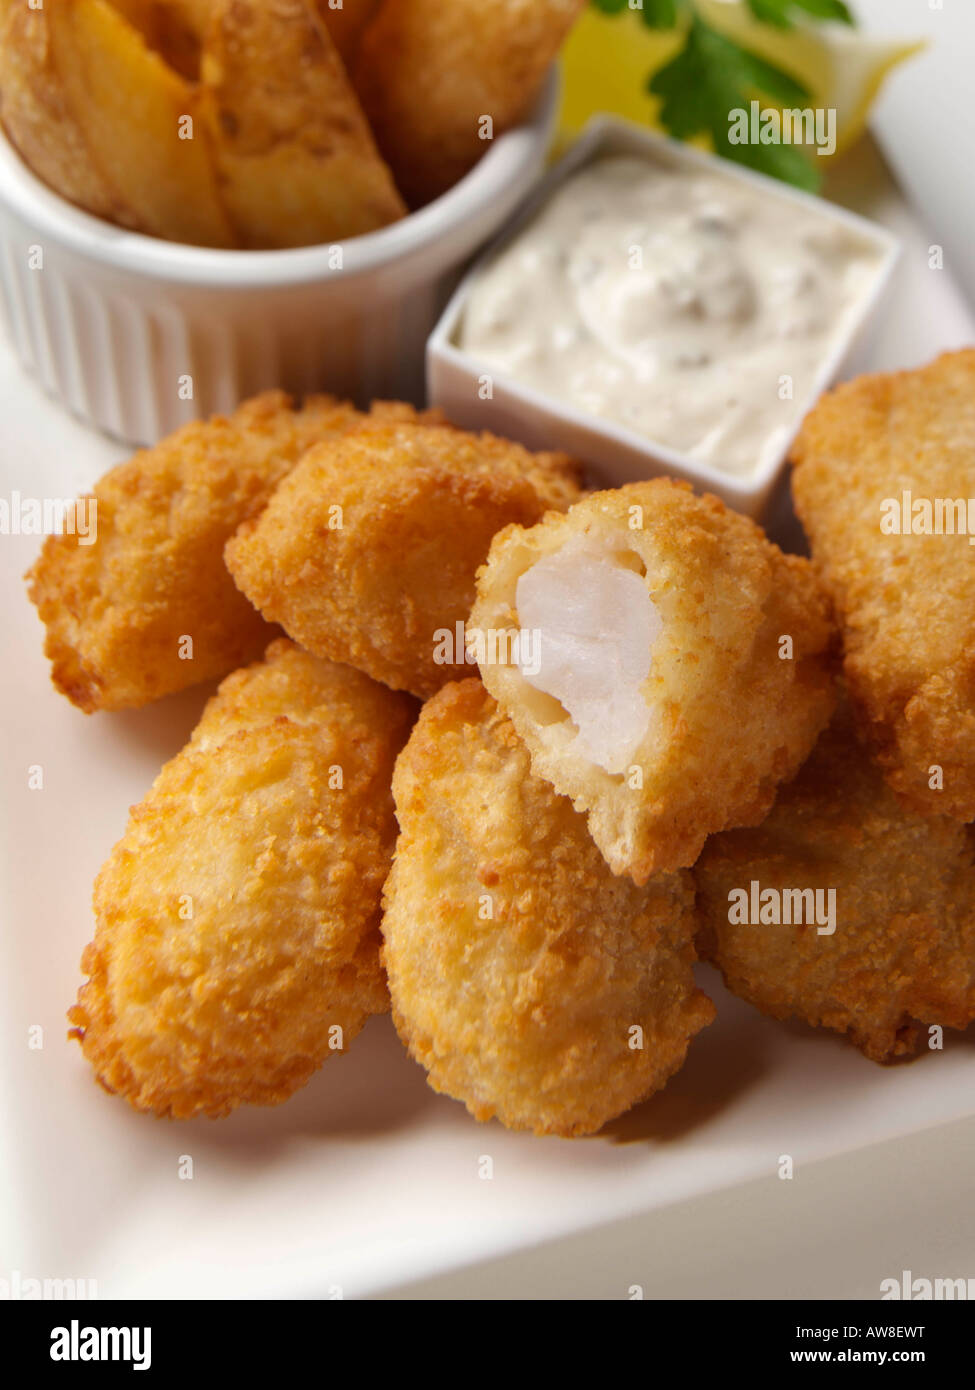 Scampi and fries kids editorial food Stock Photo